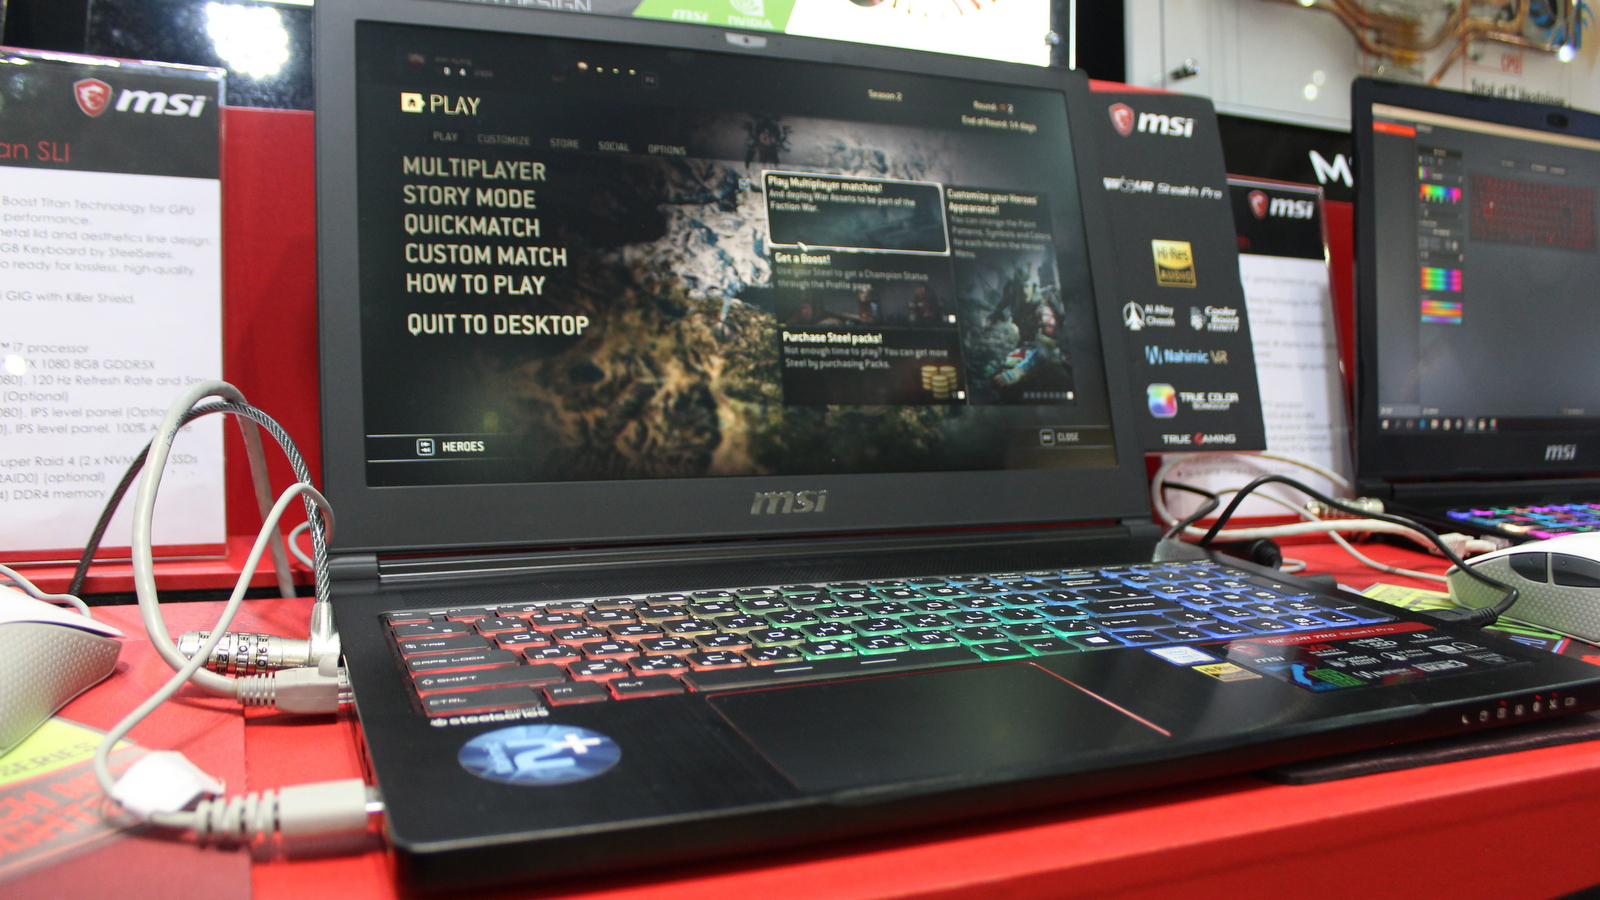 10 best gaming laptops in the UAE for 2017: top gaming